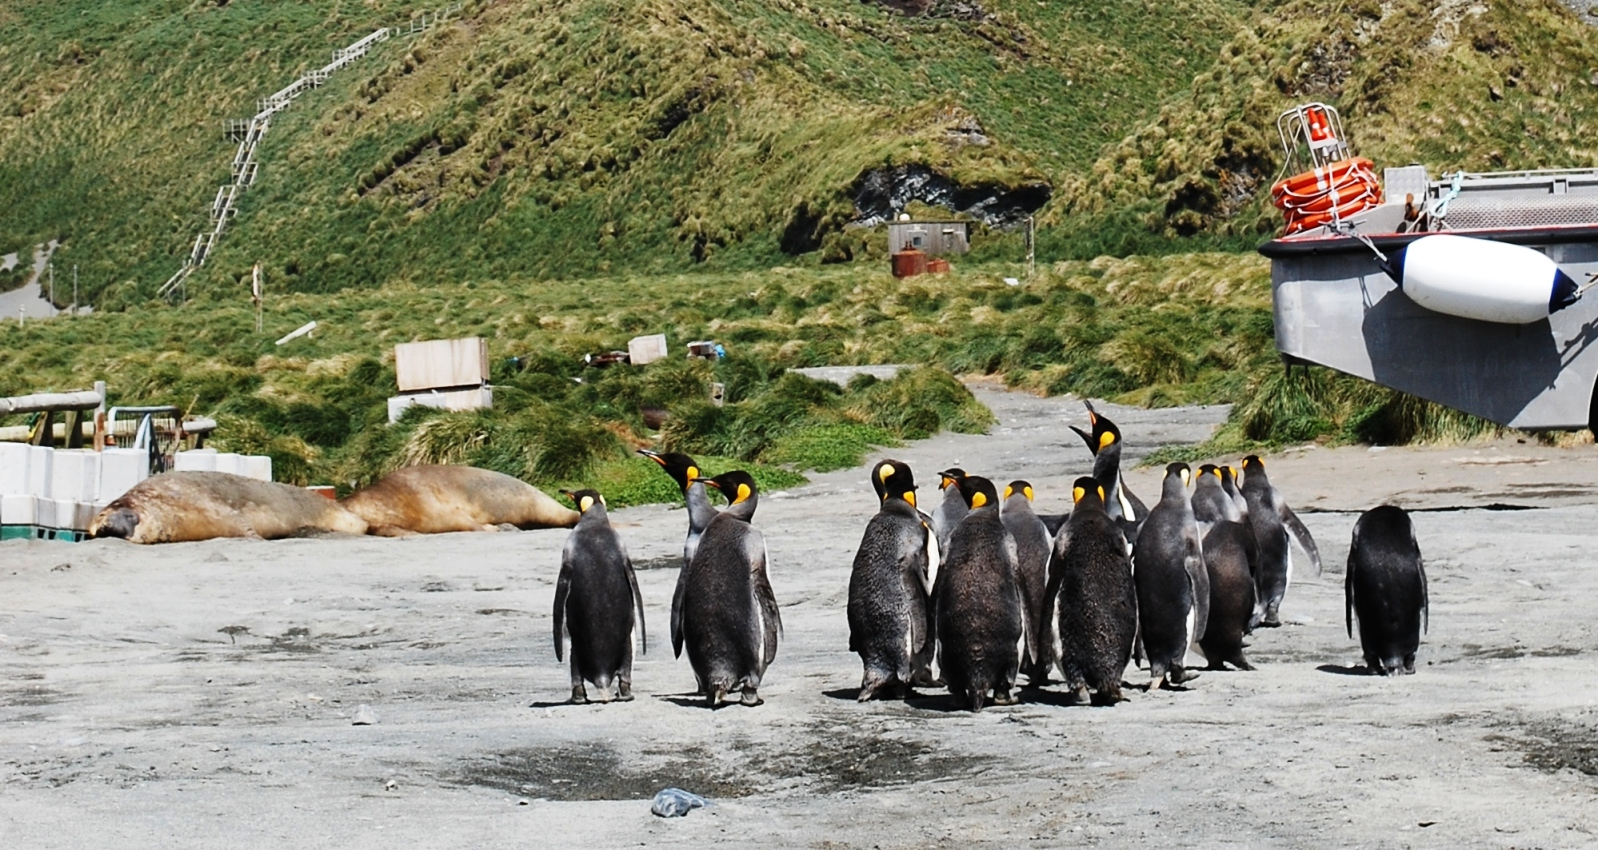 a group of 17 Penguins on macquarie island